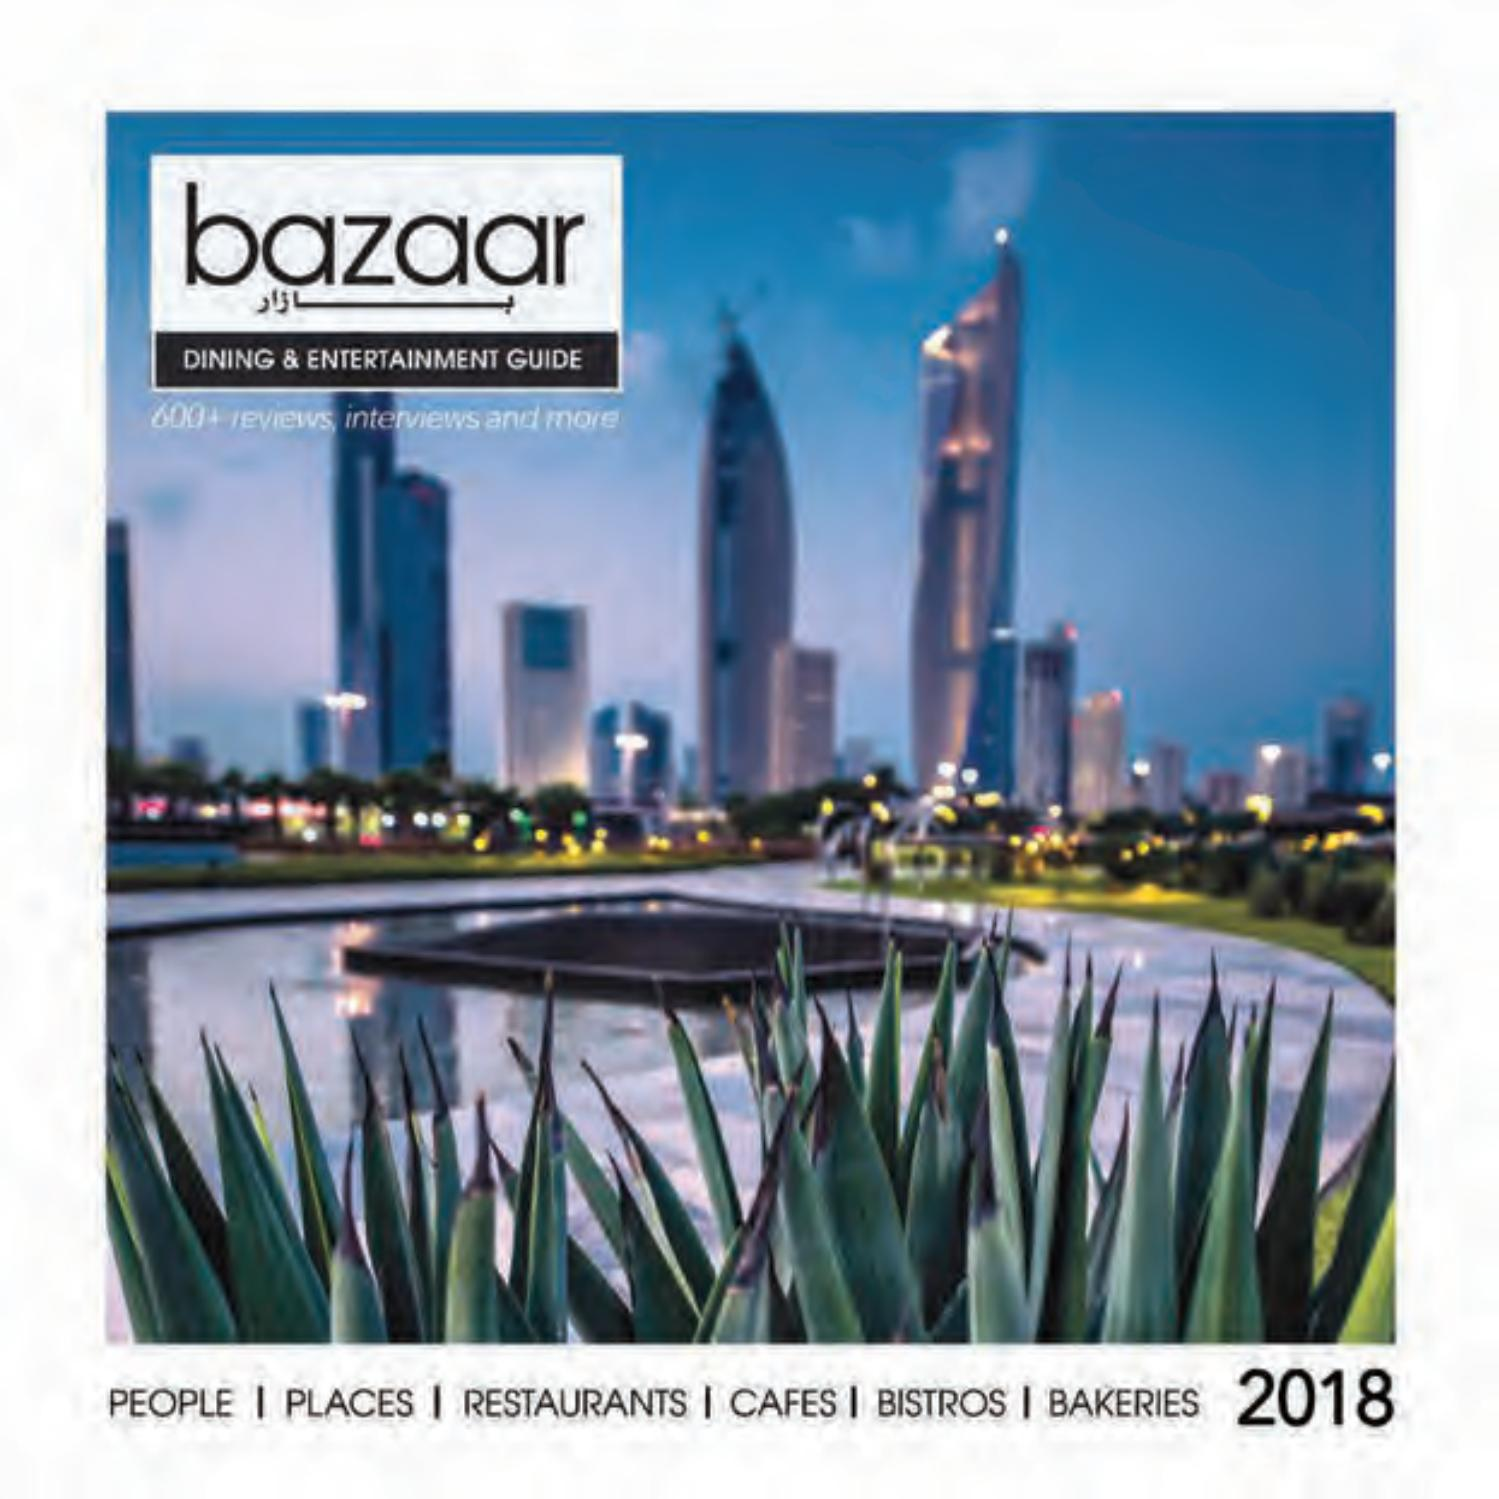 Bazaar Dining Entertainment Guide 2018 By Magazine Issuu Ombre Gray To Black Circuit Board Nerd Geek Round Clock